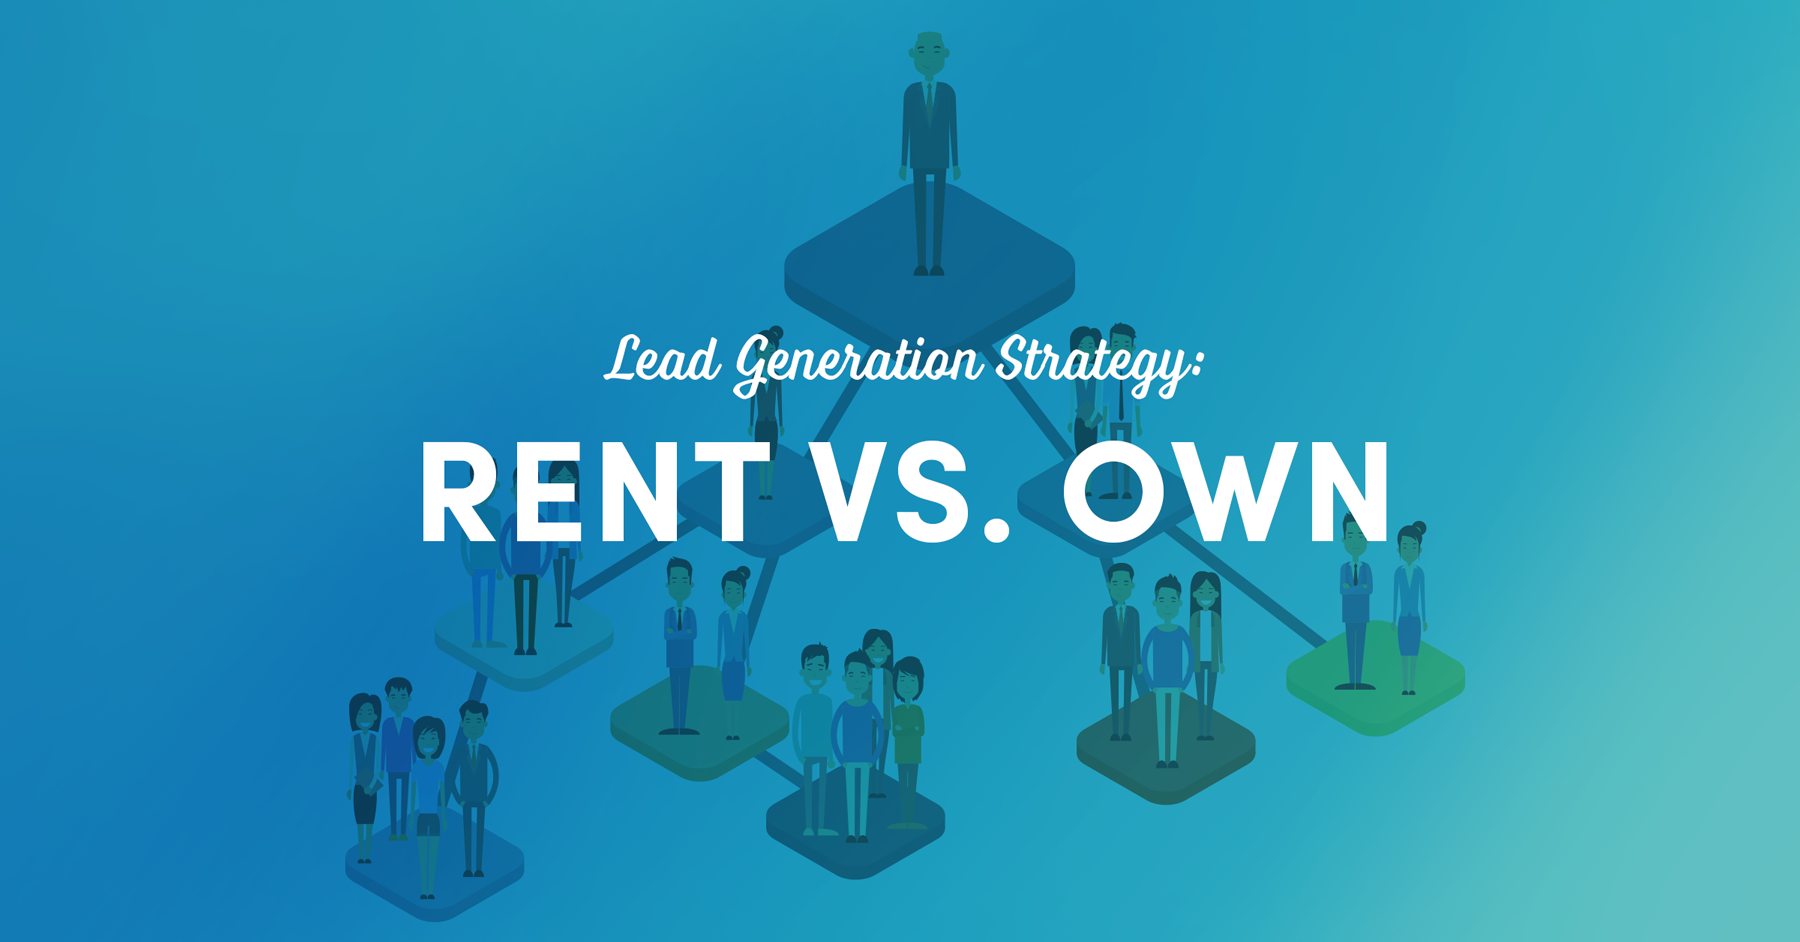 Lead Generation Strategy: Rent vs. Own